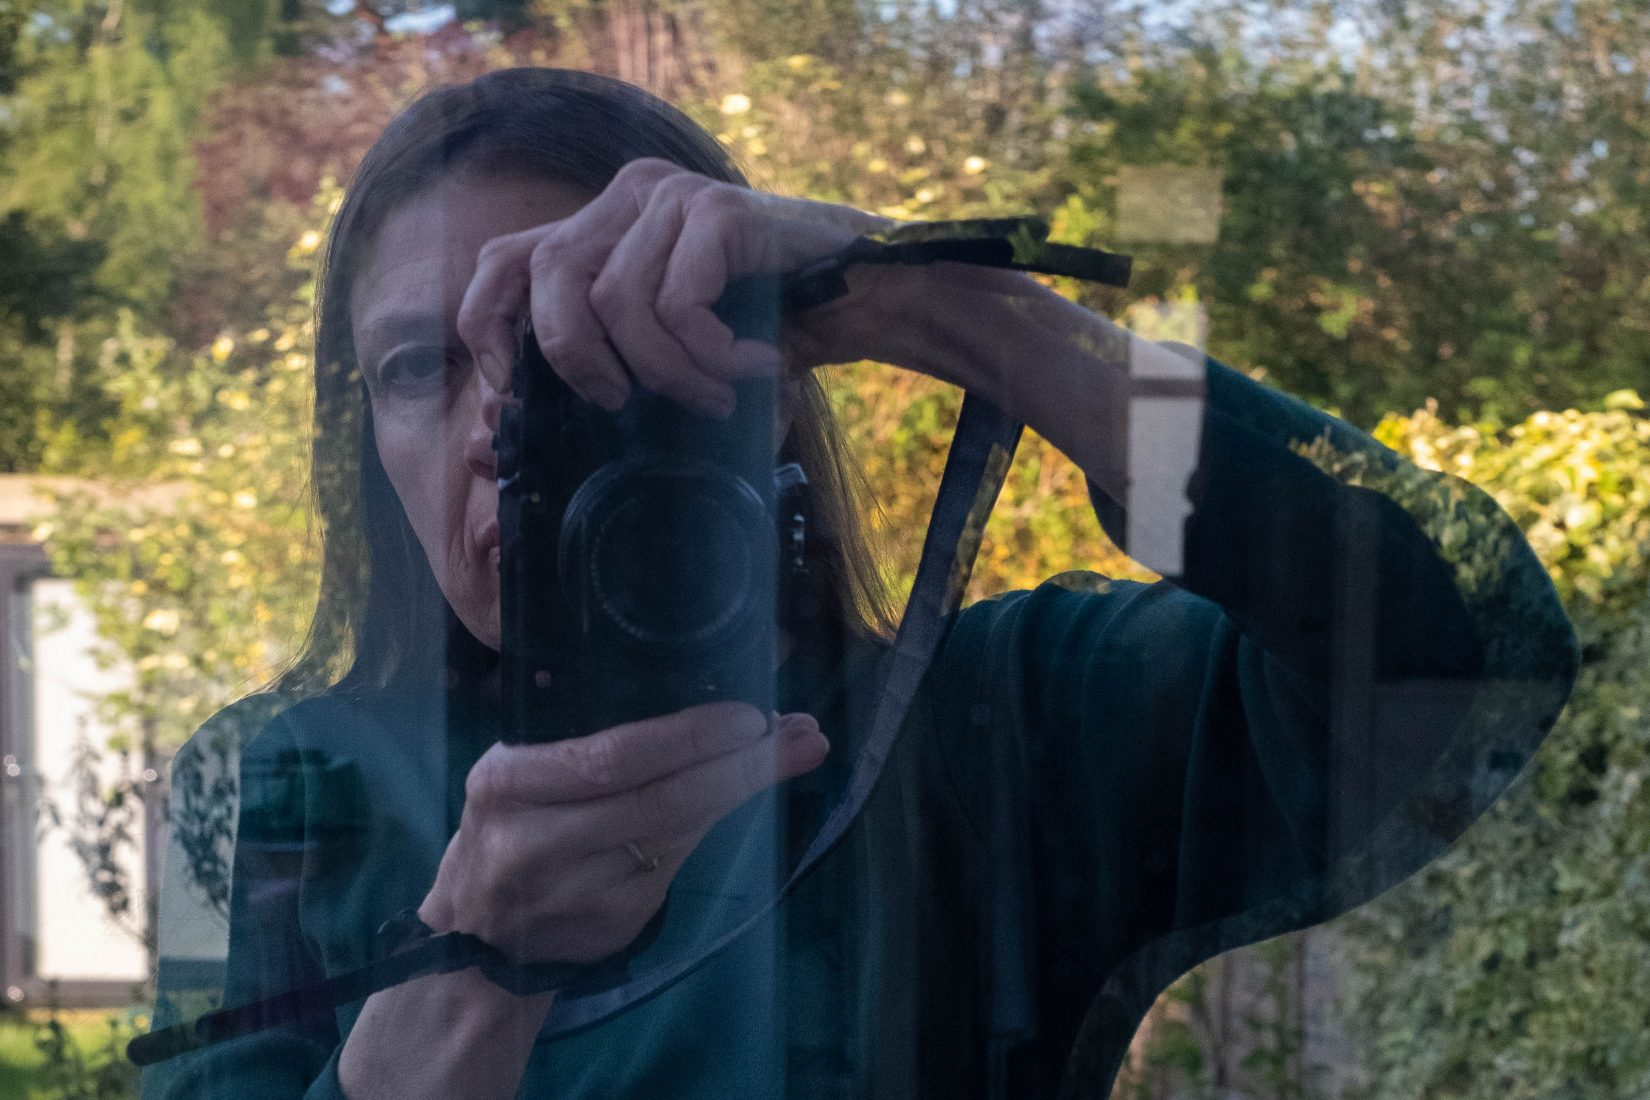 Karren, a photographer, holds the camera in front of her face to take a self portrait using the reflection of a window, when experimenting in lockdown April 2020